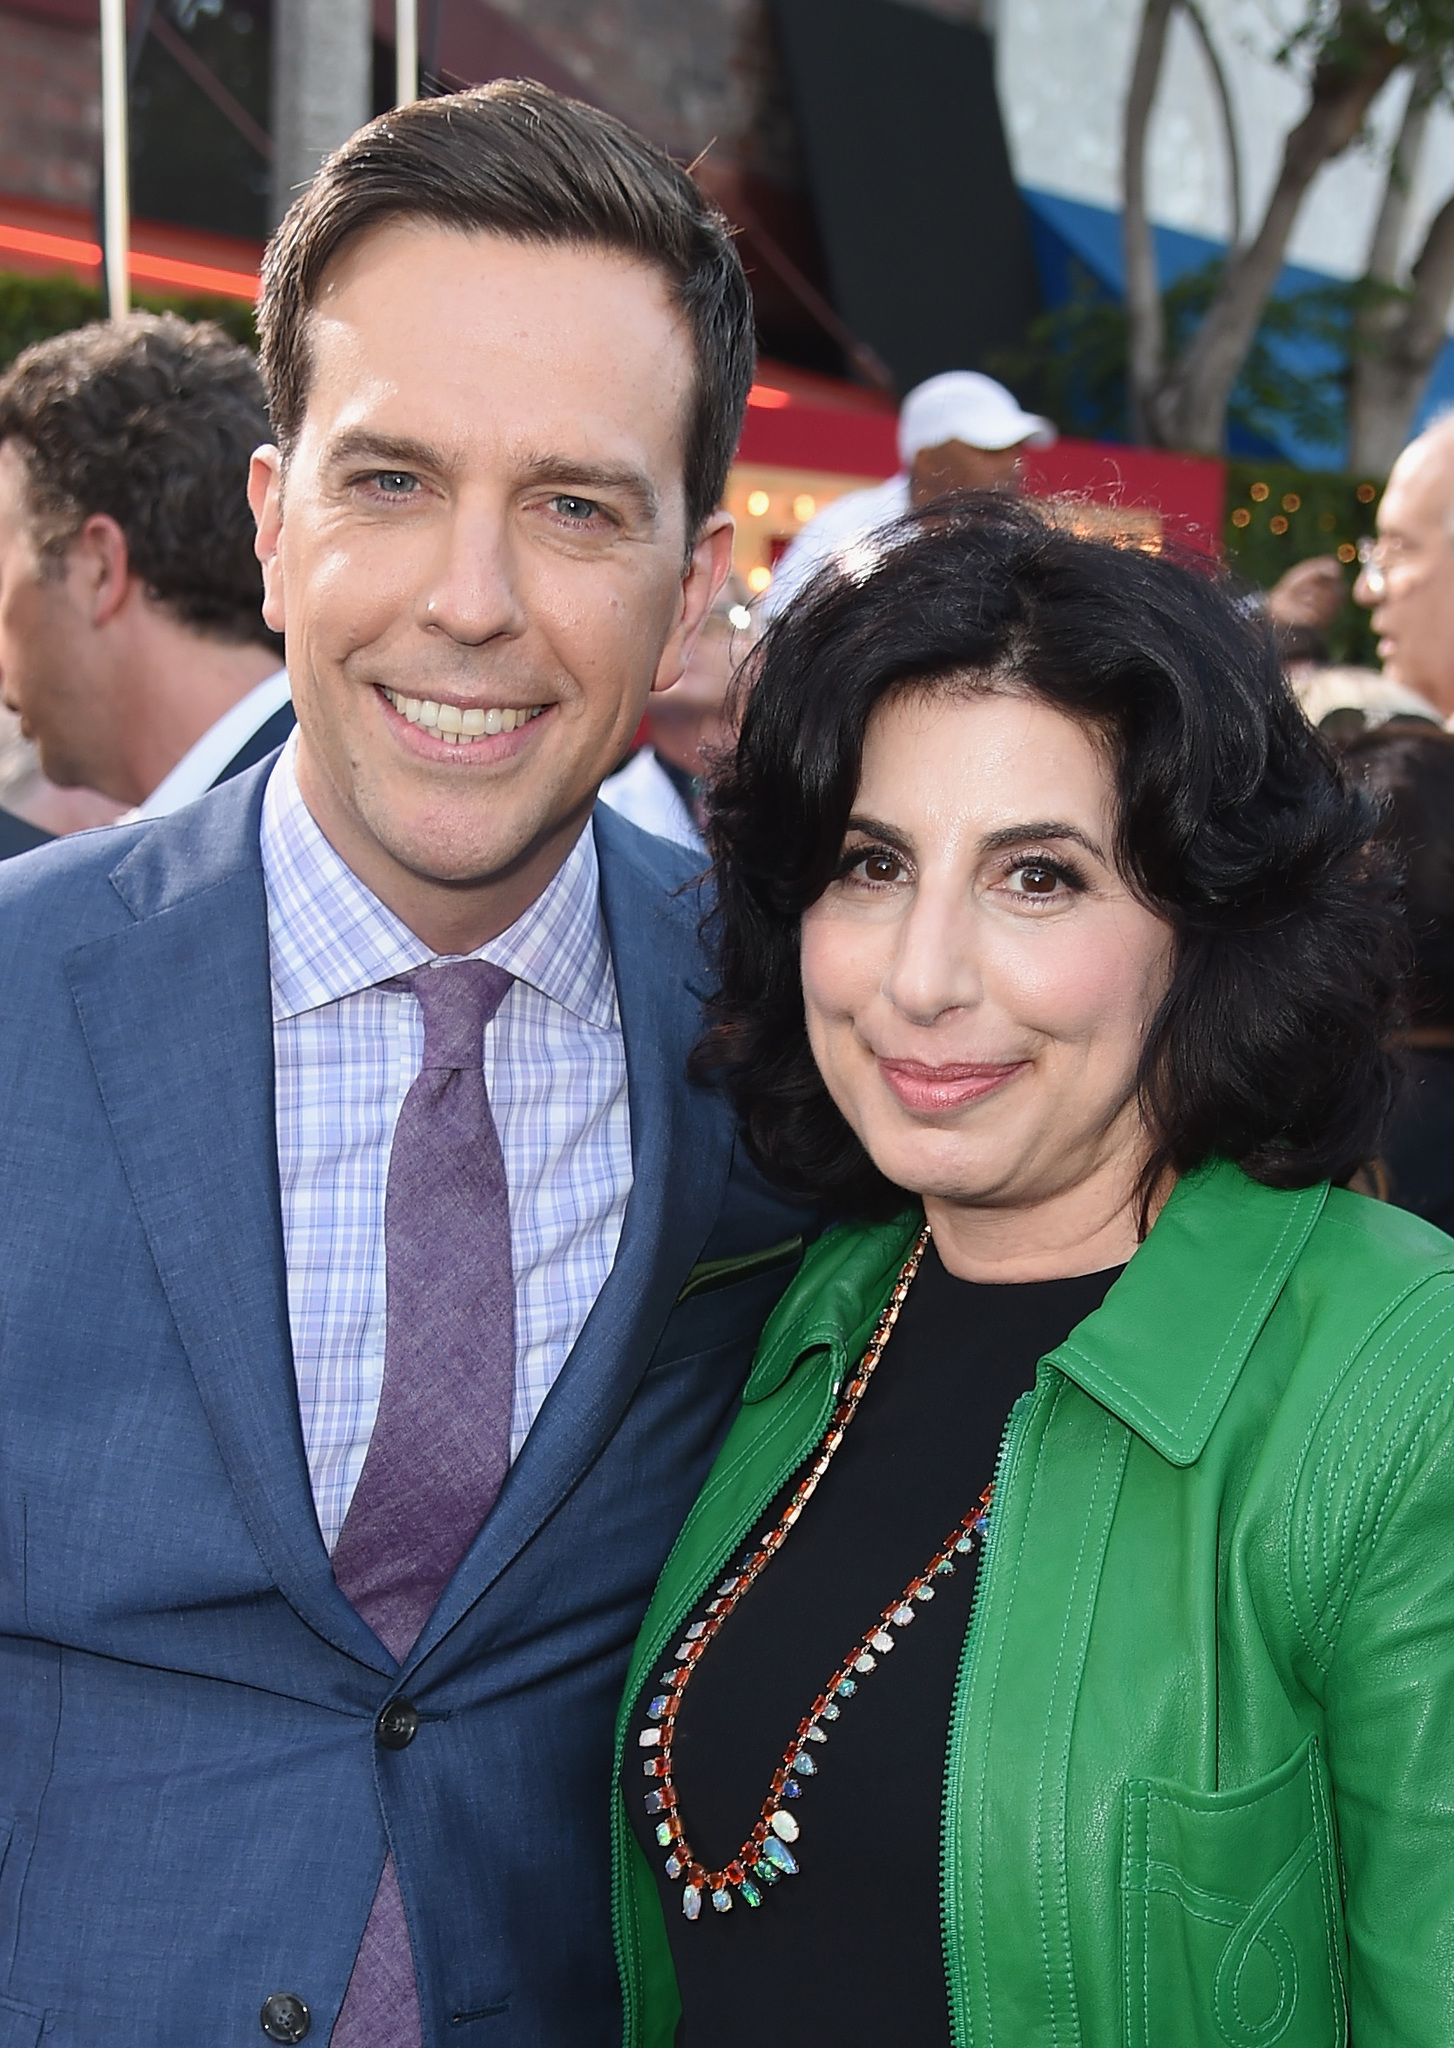 Ed Helms and Sue Kroll at an event for Vacation (2015)